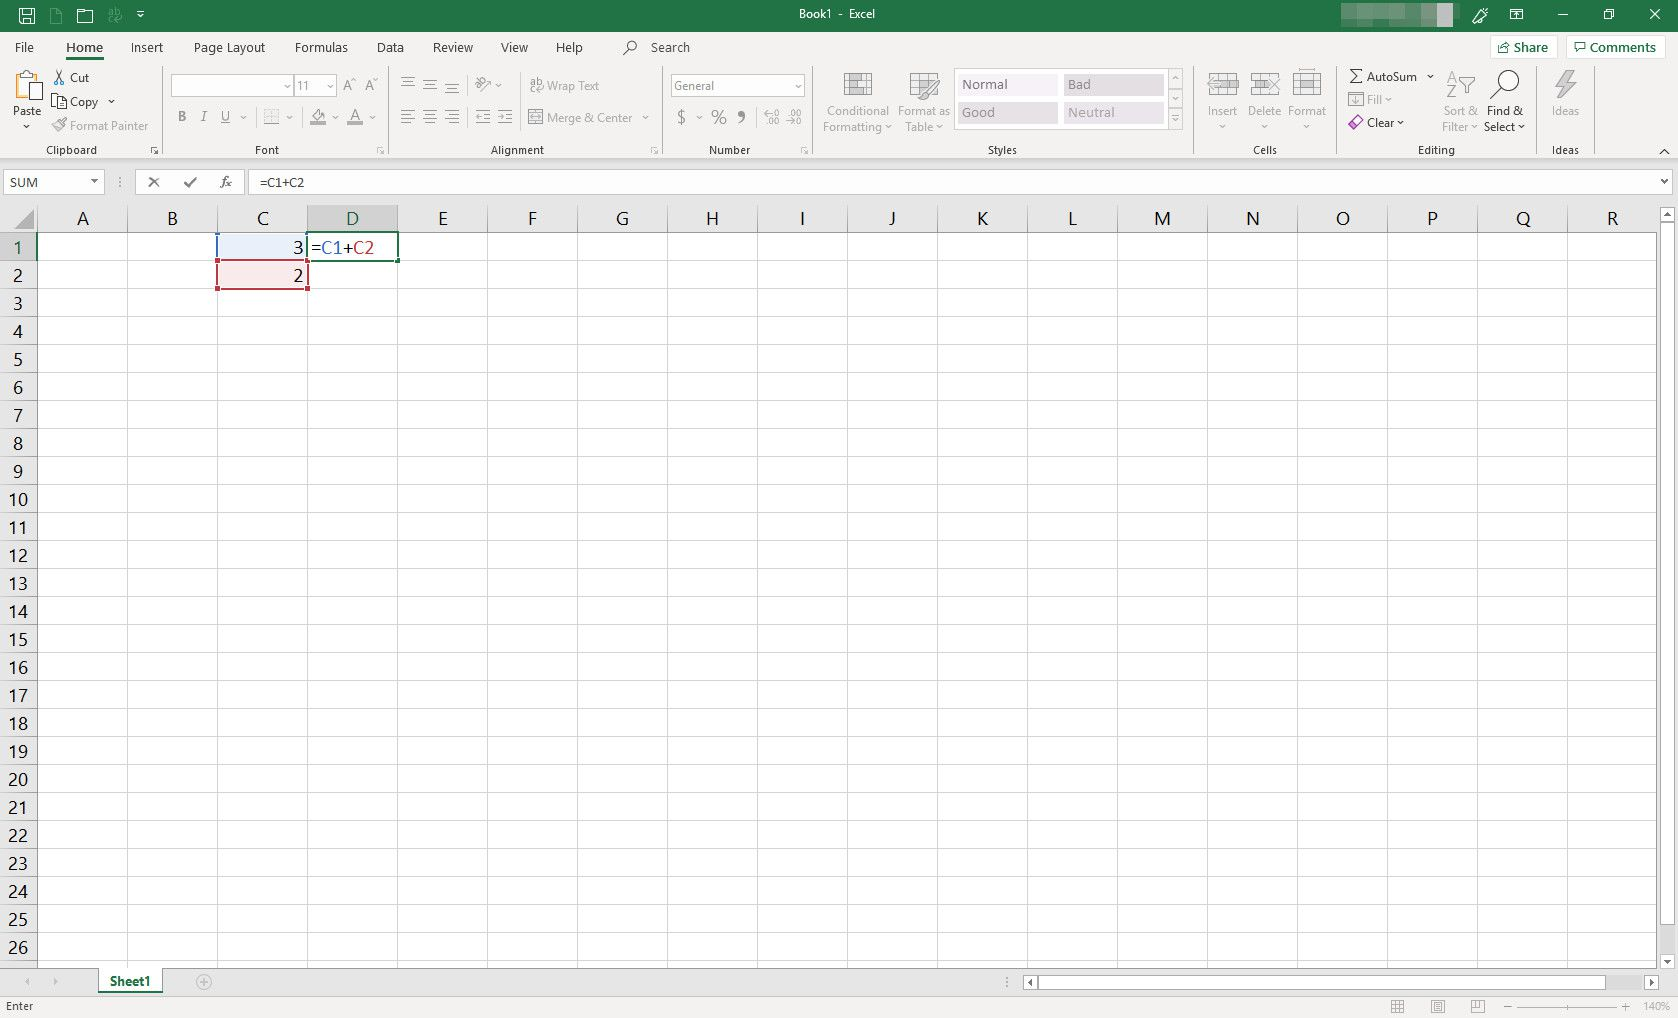 MS Excel spreadsheet with two cells populated with data and formula typed into a third cell